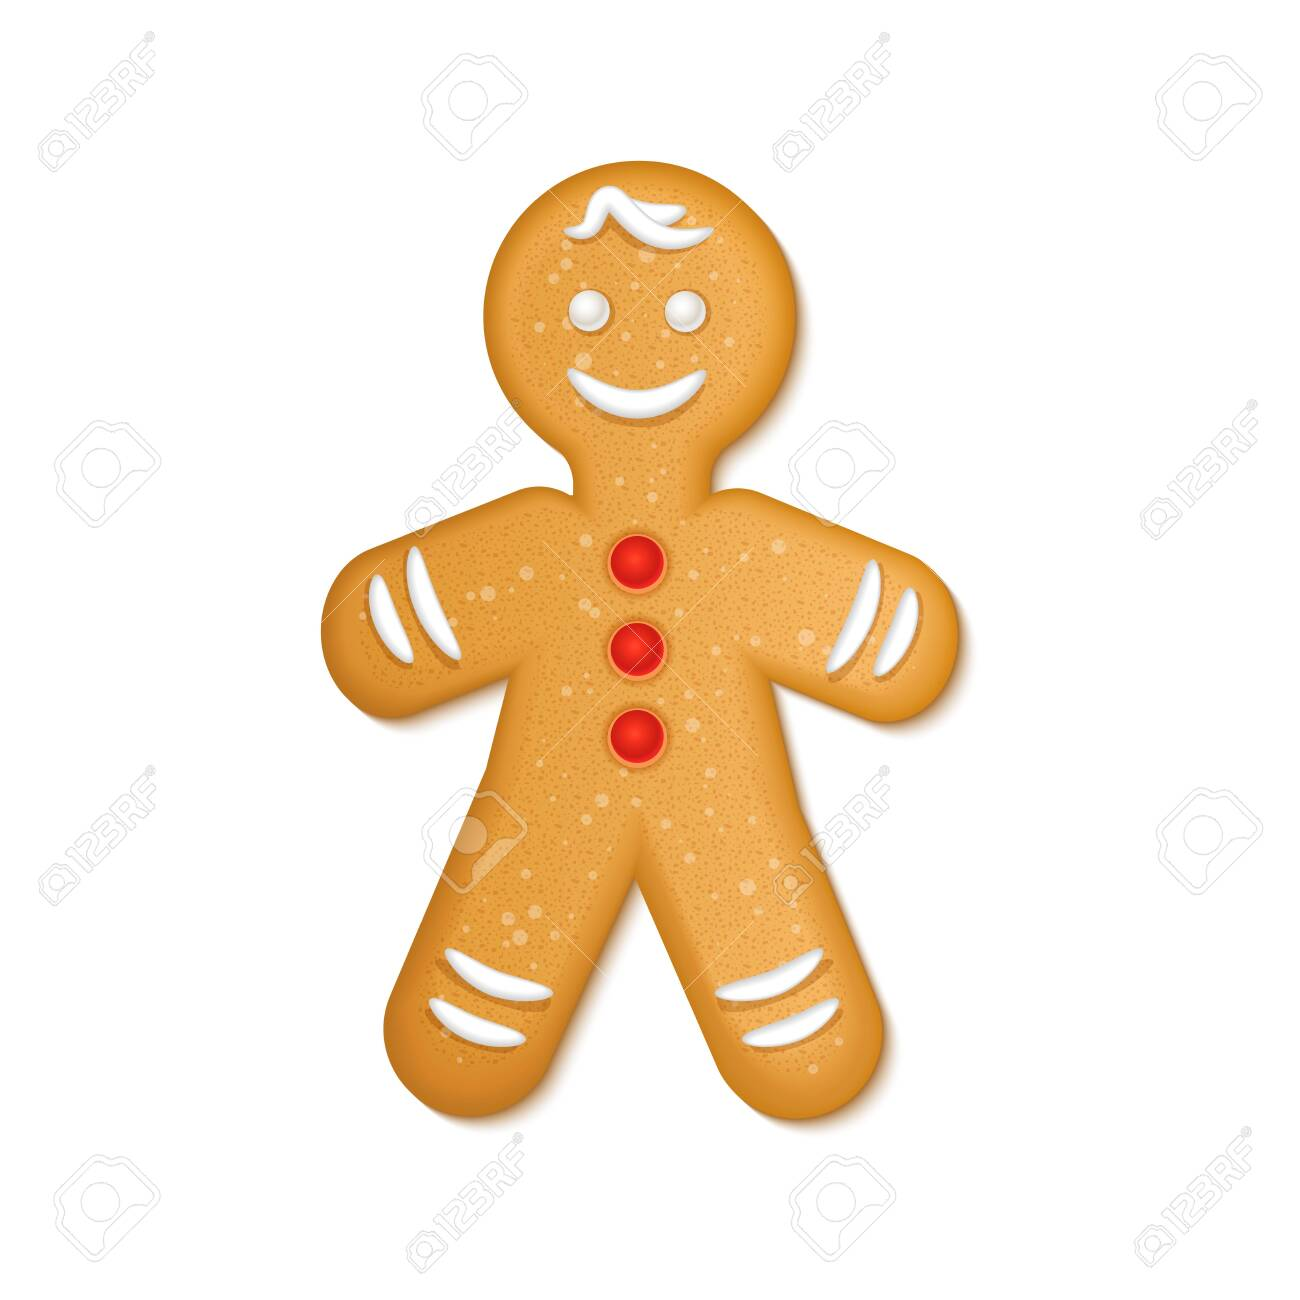 Gingerbread man with red candies and white icing. Christmas Greeting Cookies. New Year winter holidays traditional dessert. Vector illustration isolated on white background. - 155410466